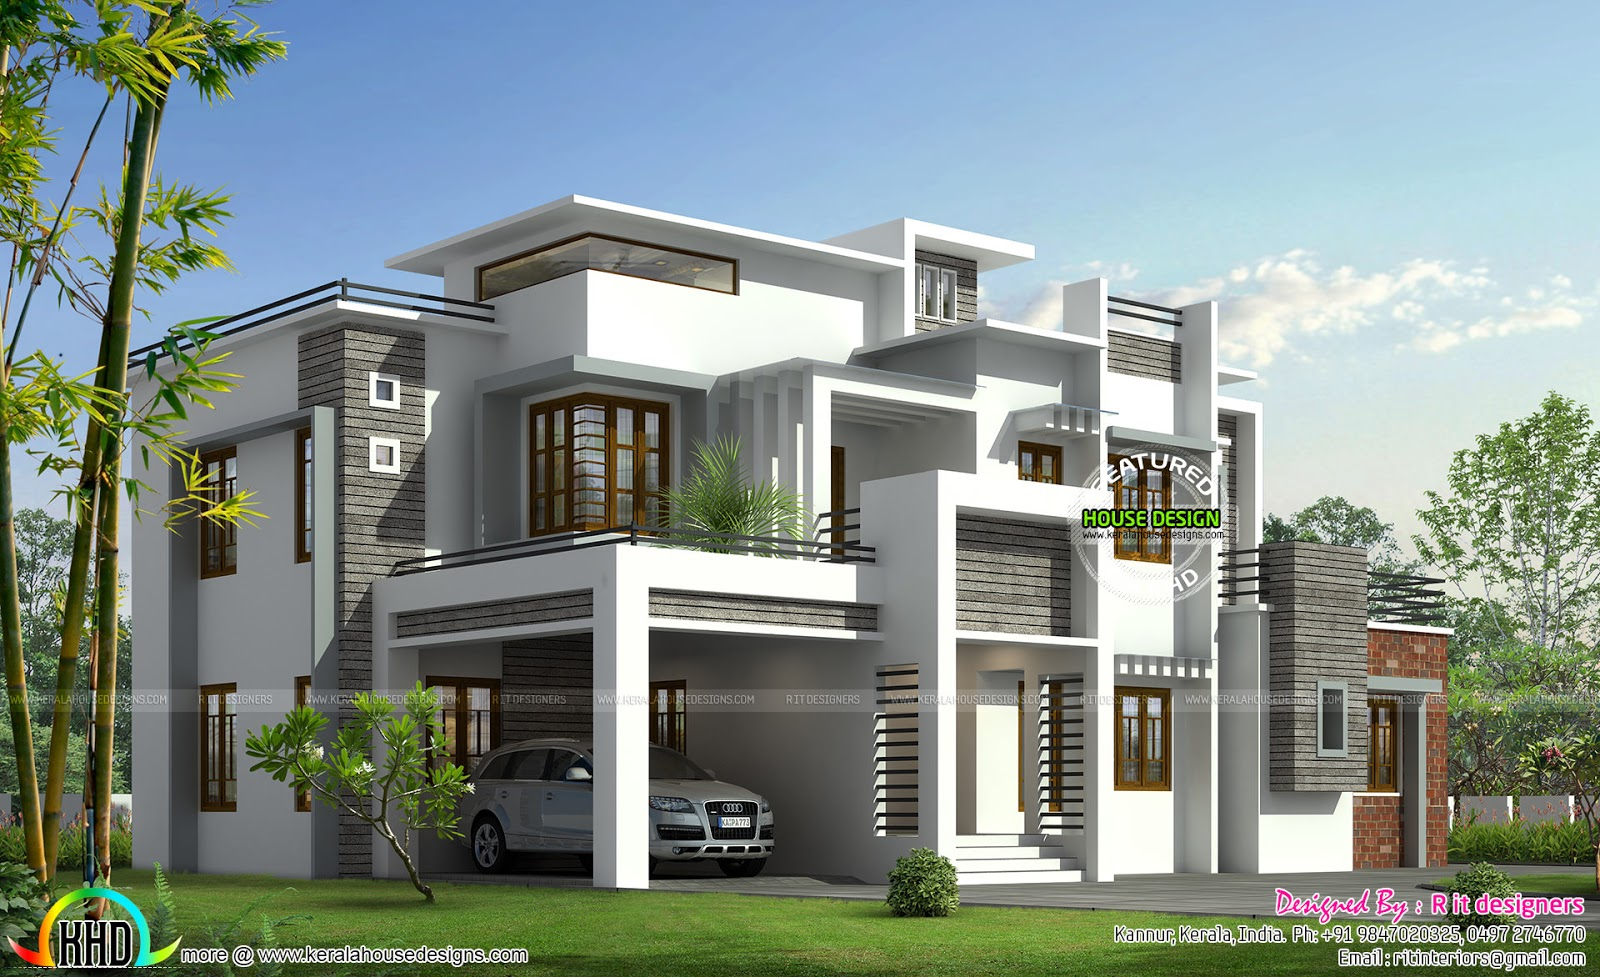 Box model contemporary house kerala home design and for Contemporary home blueprints